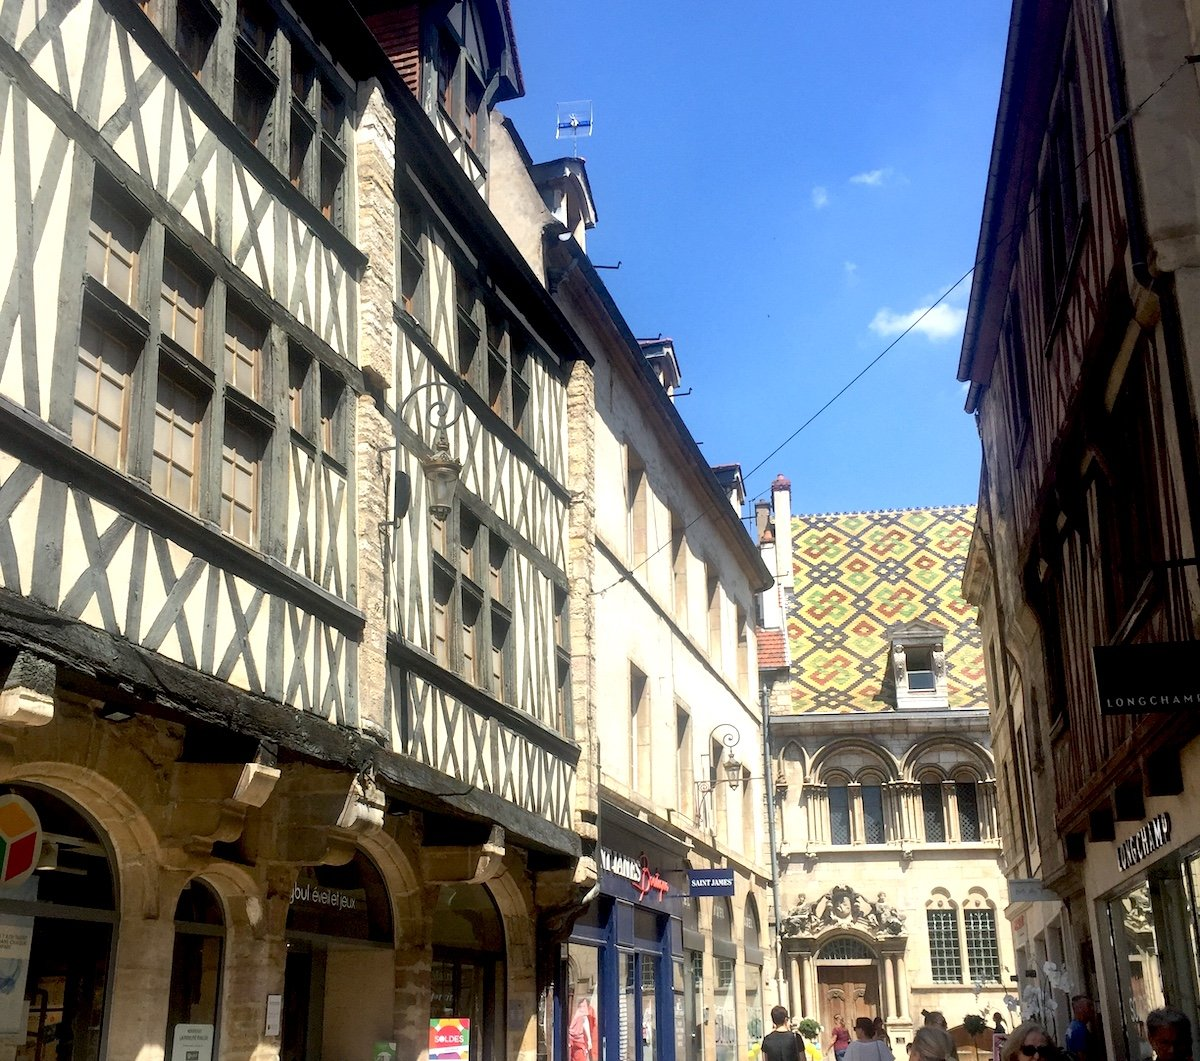 Medieval Timbered Buildings in Dijon